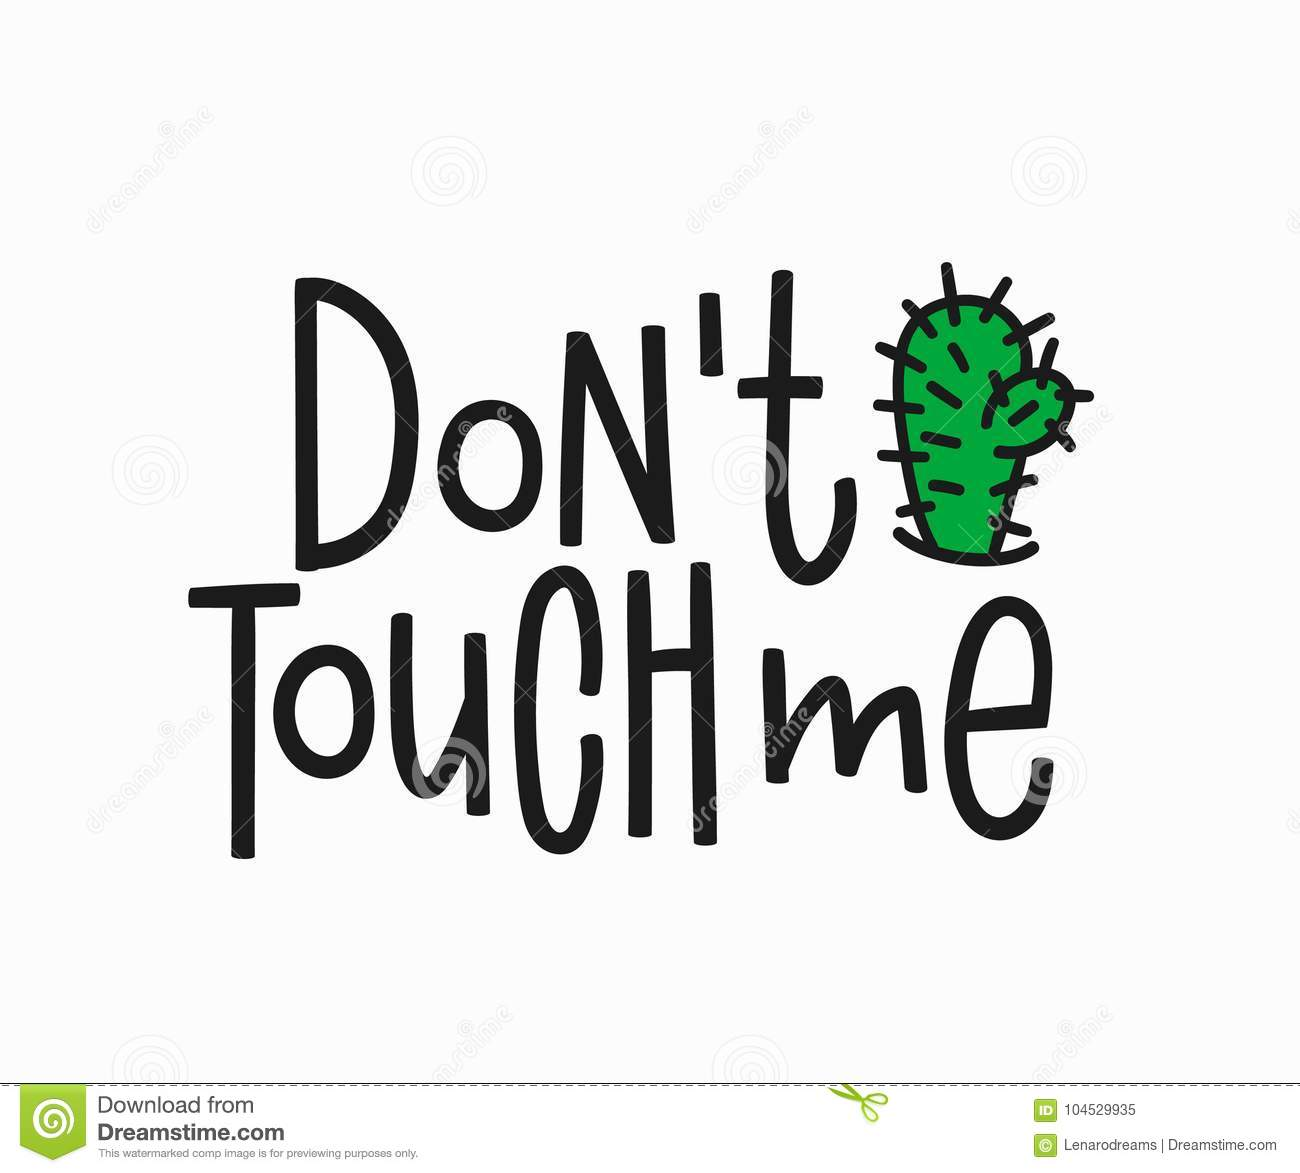 Dont touch me t-shirt quote lettering.